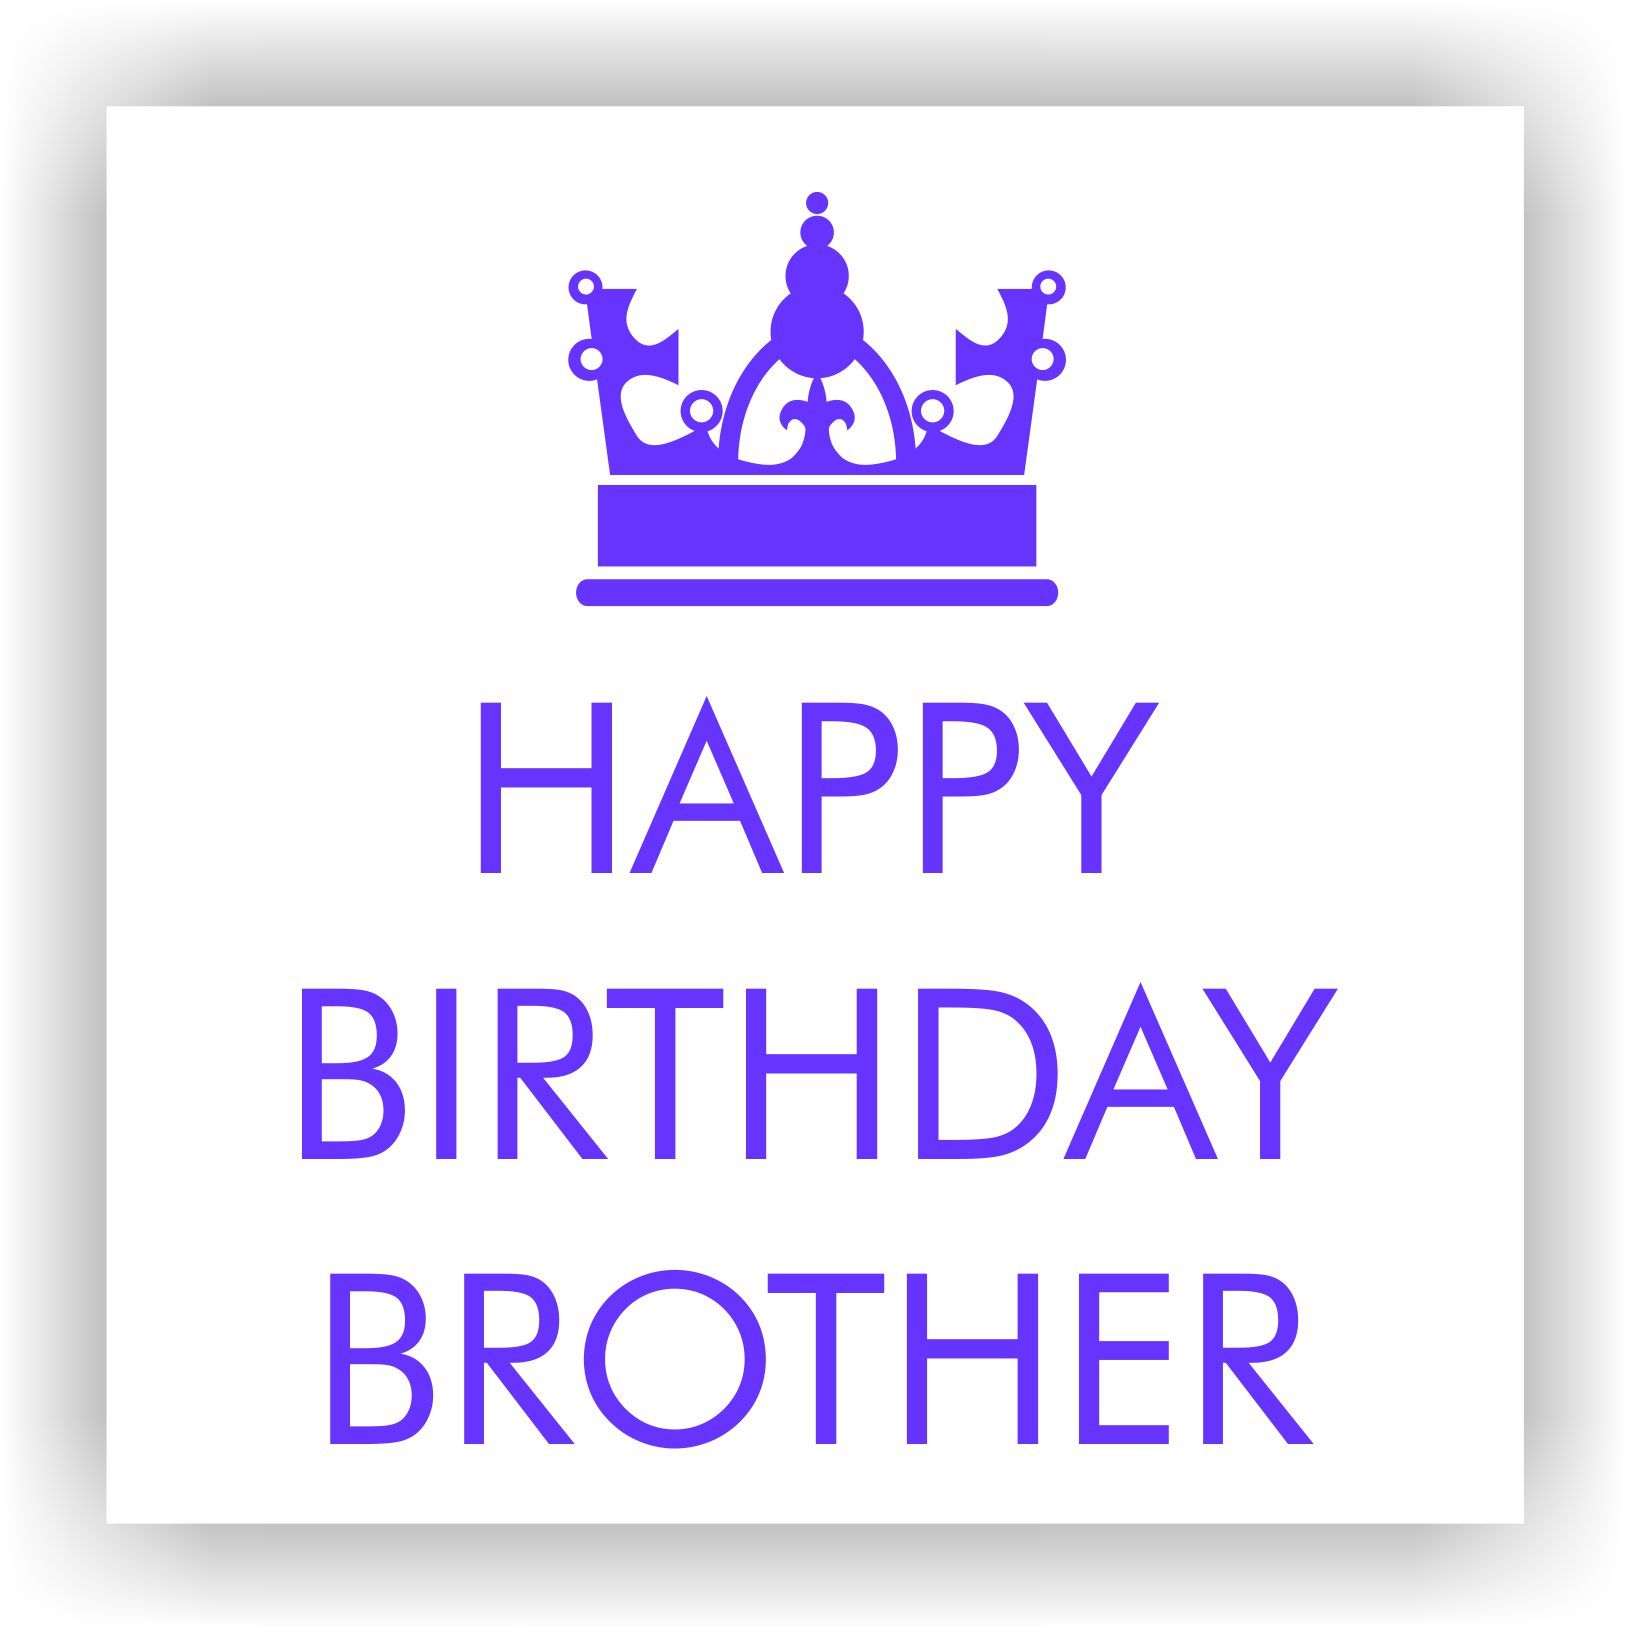 Infoqueenb happy birthday brother charity greeting card just infoqueenb happy birthday brother charity greeting card just aed10 kristyandbryce Choice Image